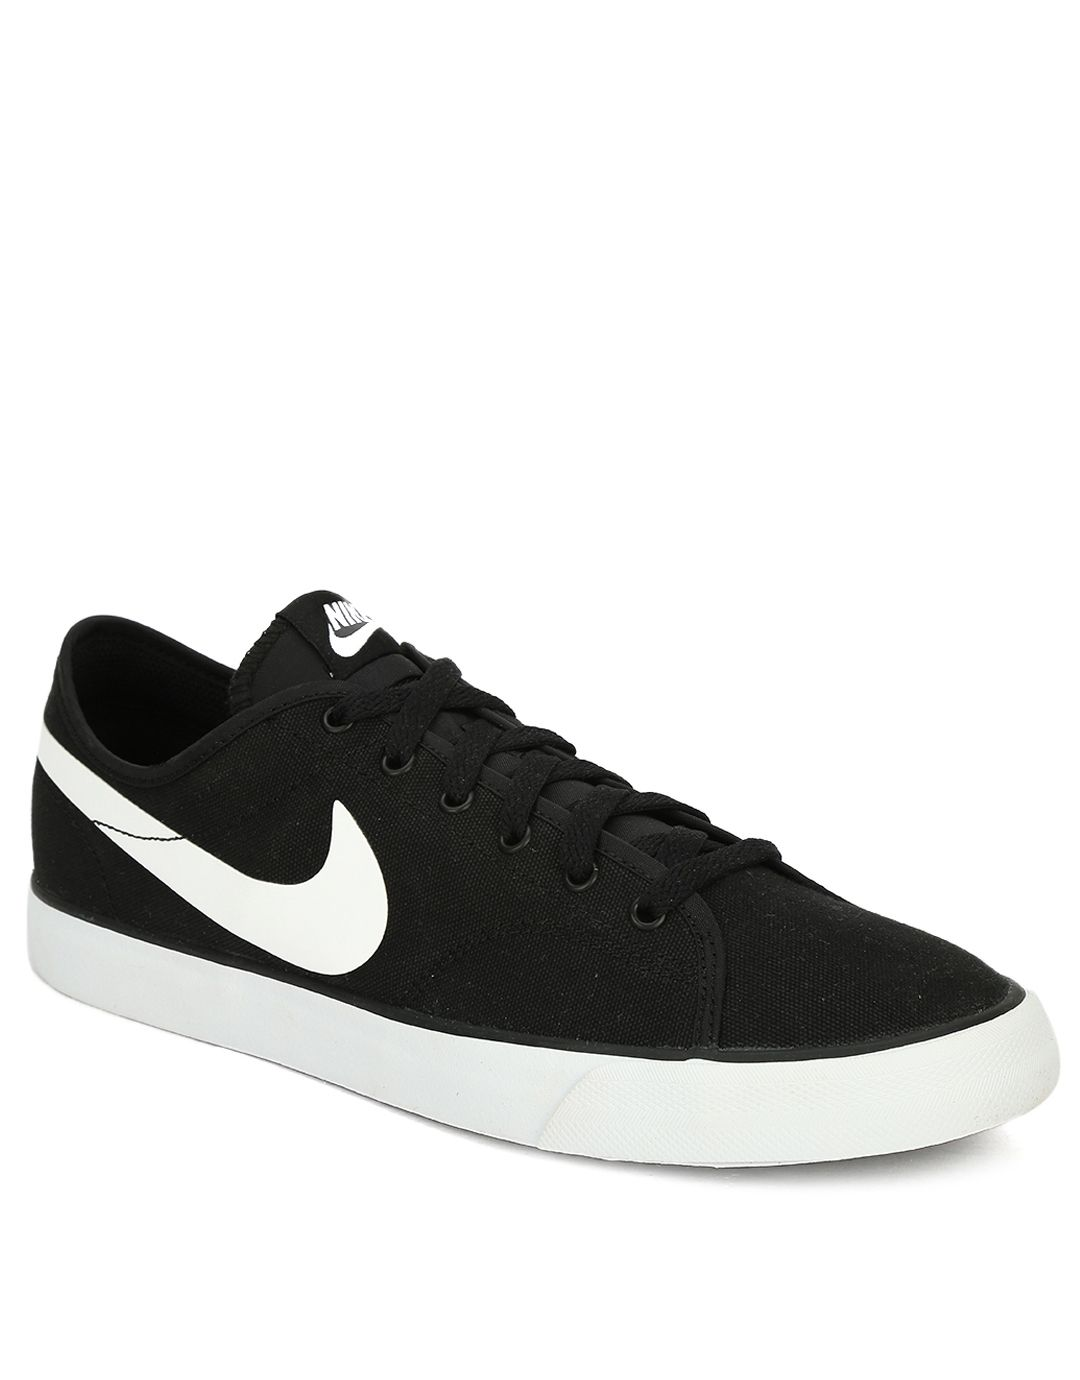 Nike PRIMO COURT Black Casual Shoes - Buy Nike PRIMO COURT ...